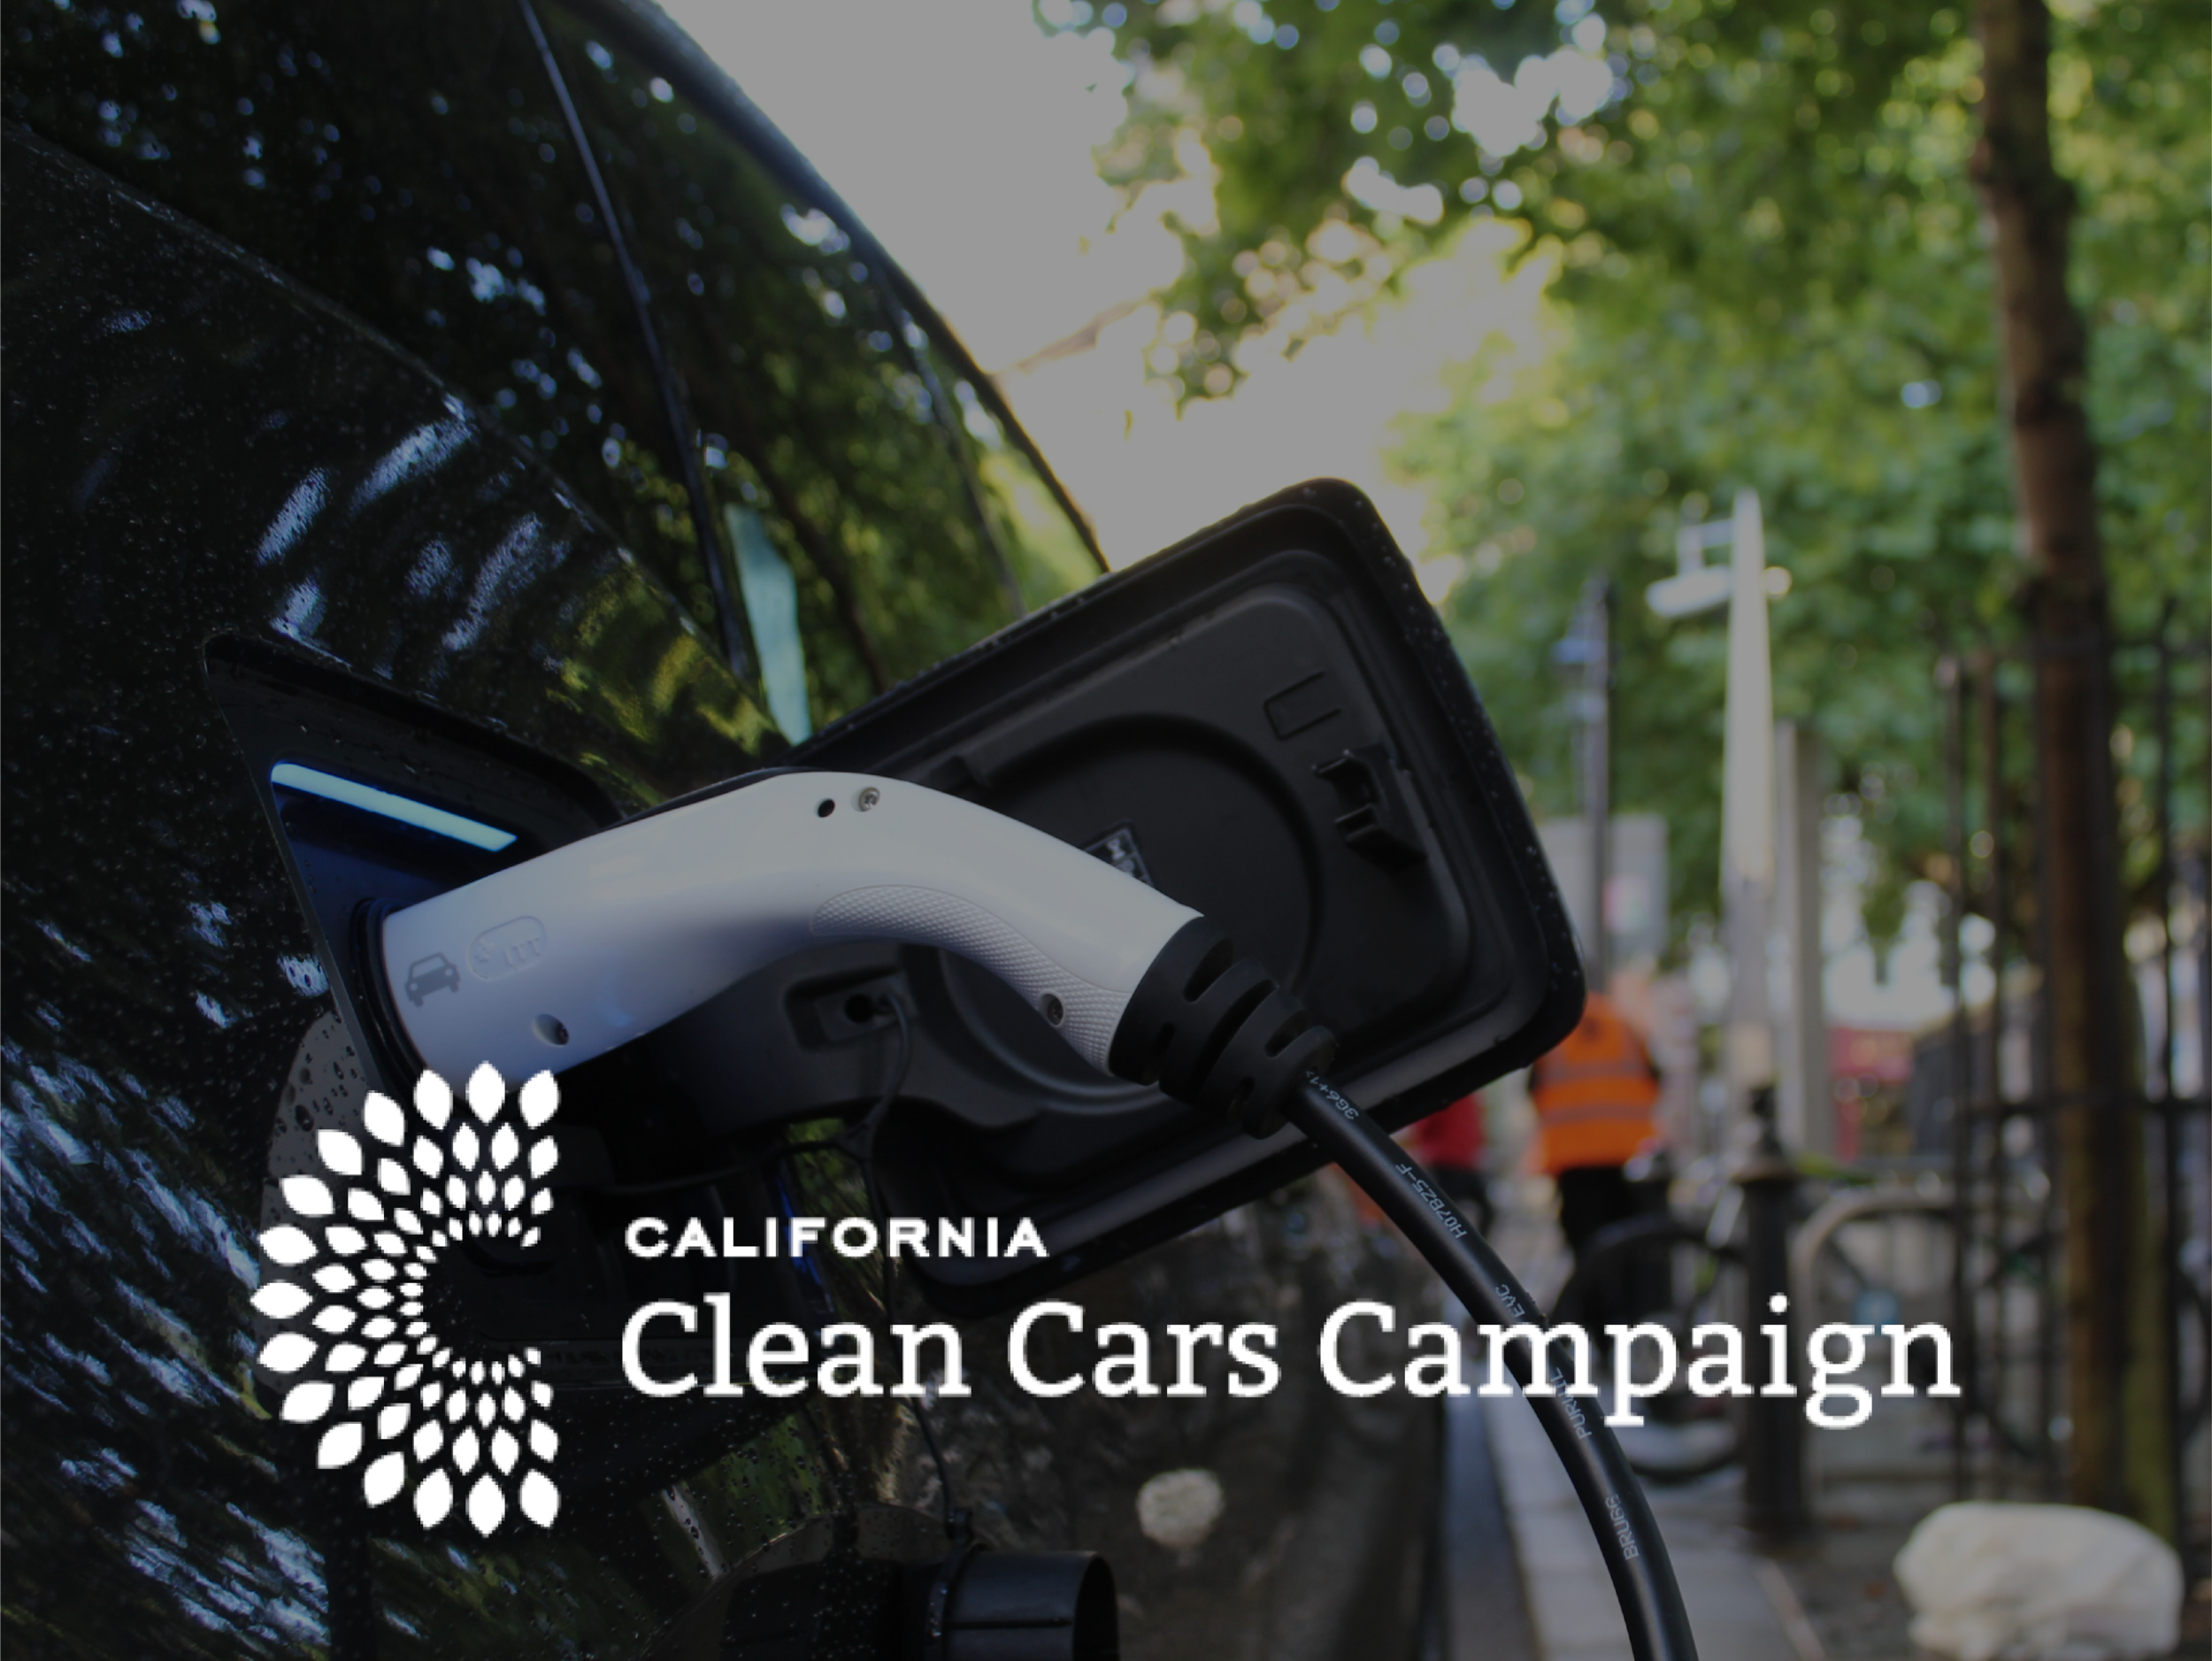 CAMPAIGN - Led a multi-state campaign to defend clean car standards from Trump Administration rollbacks